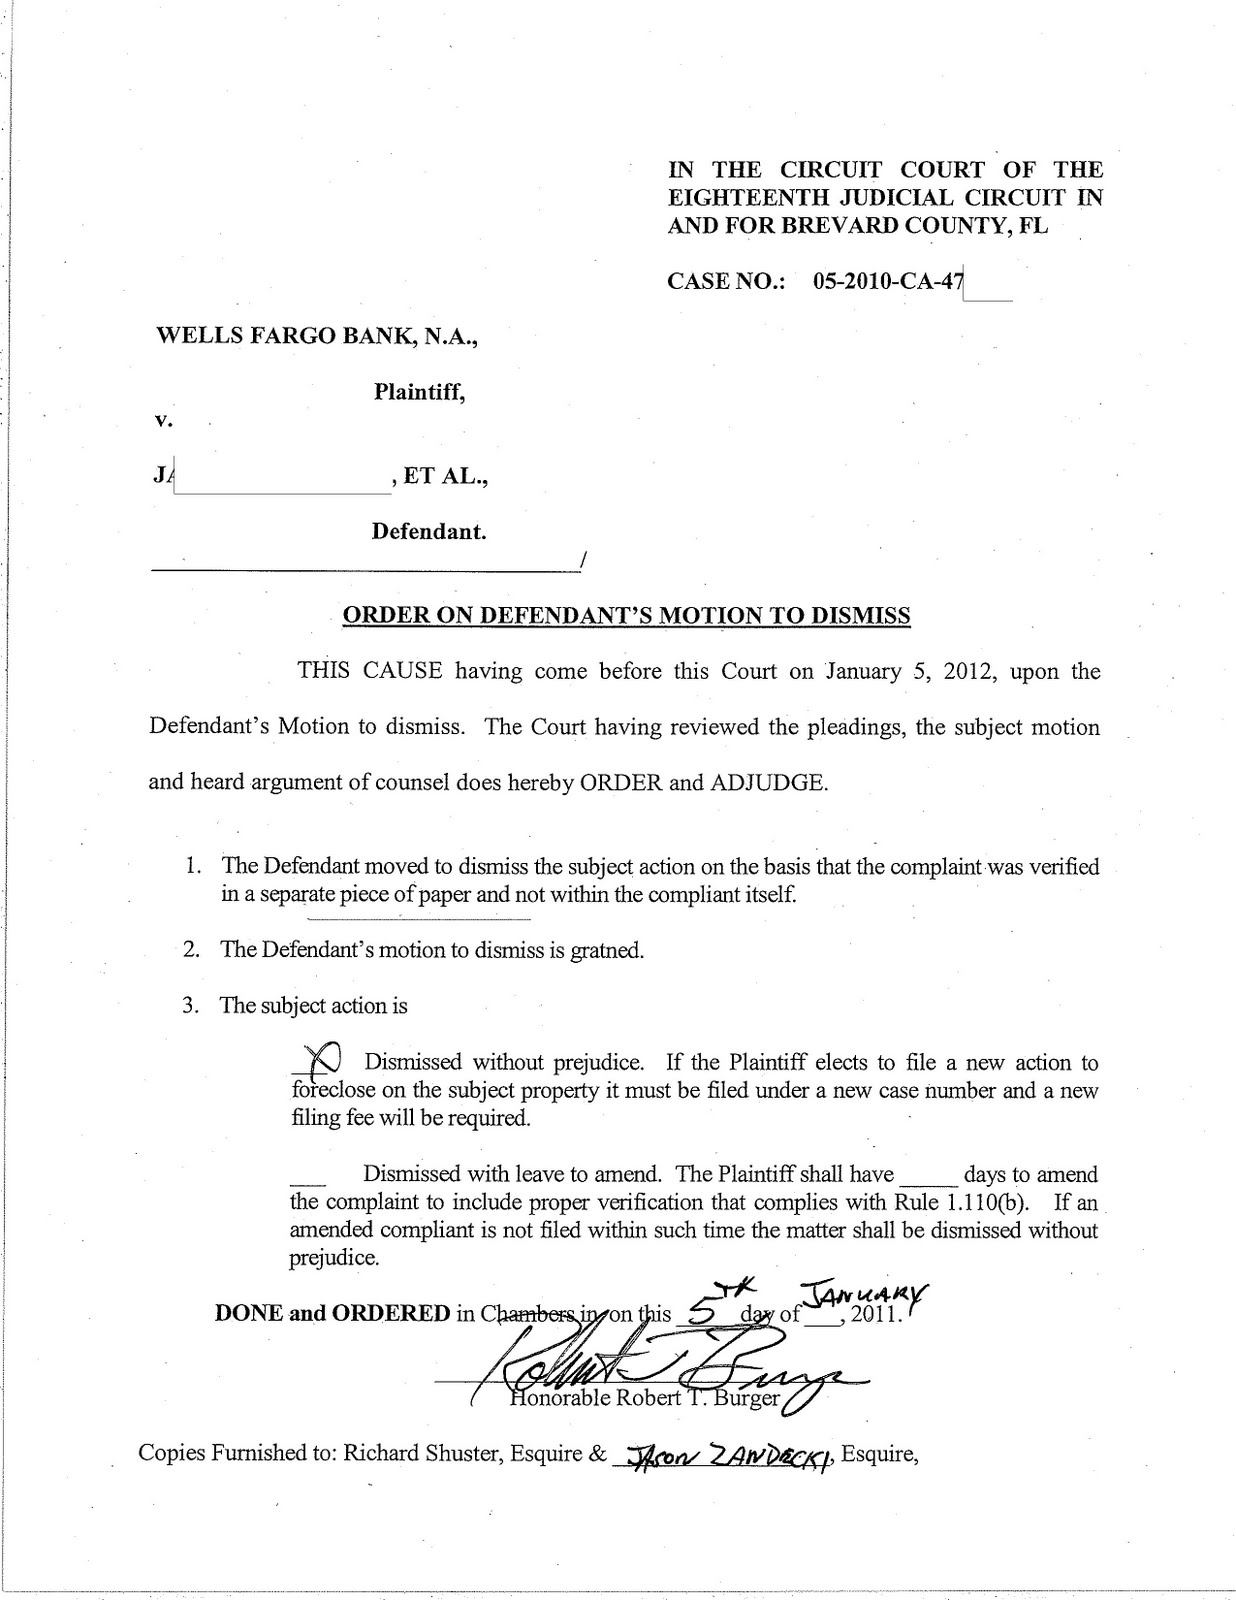 how to write a motion to dismiss letter